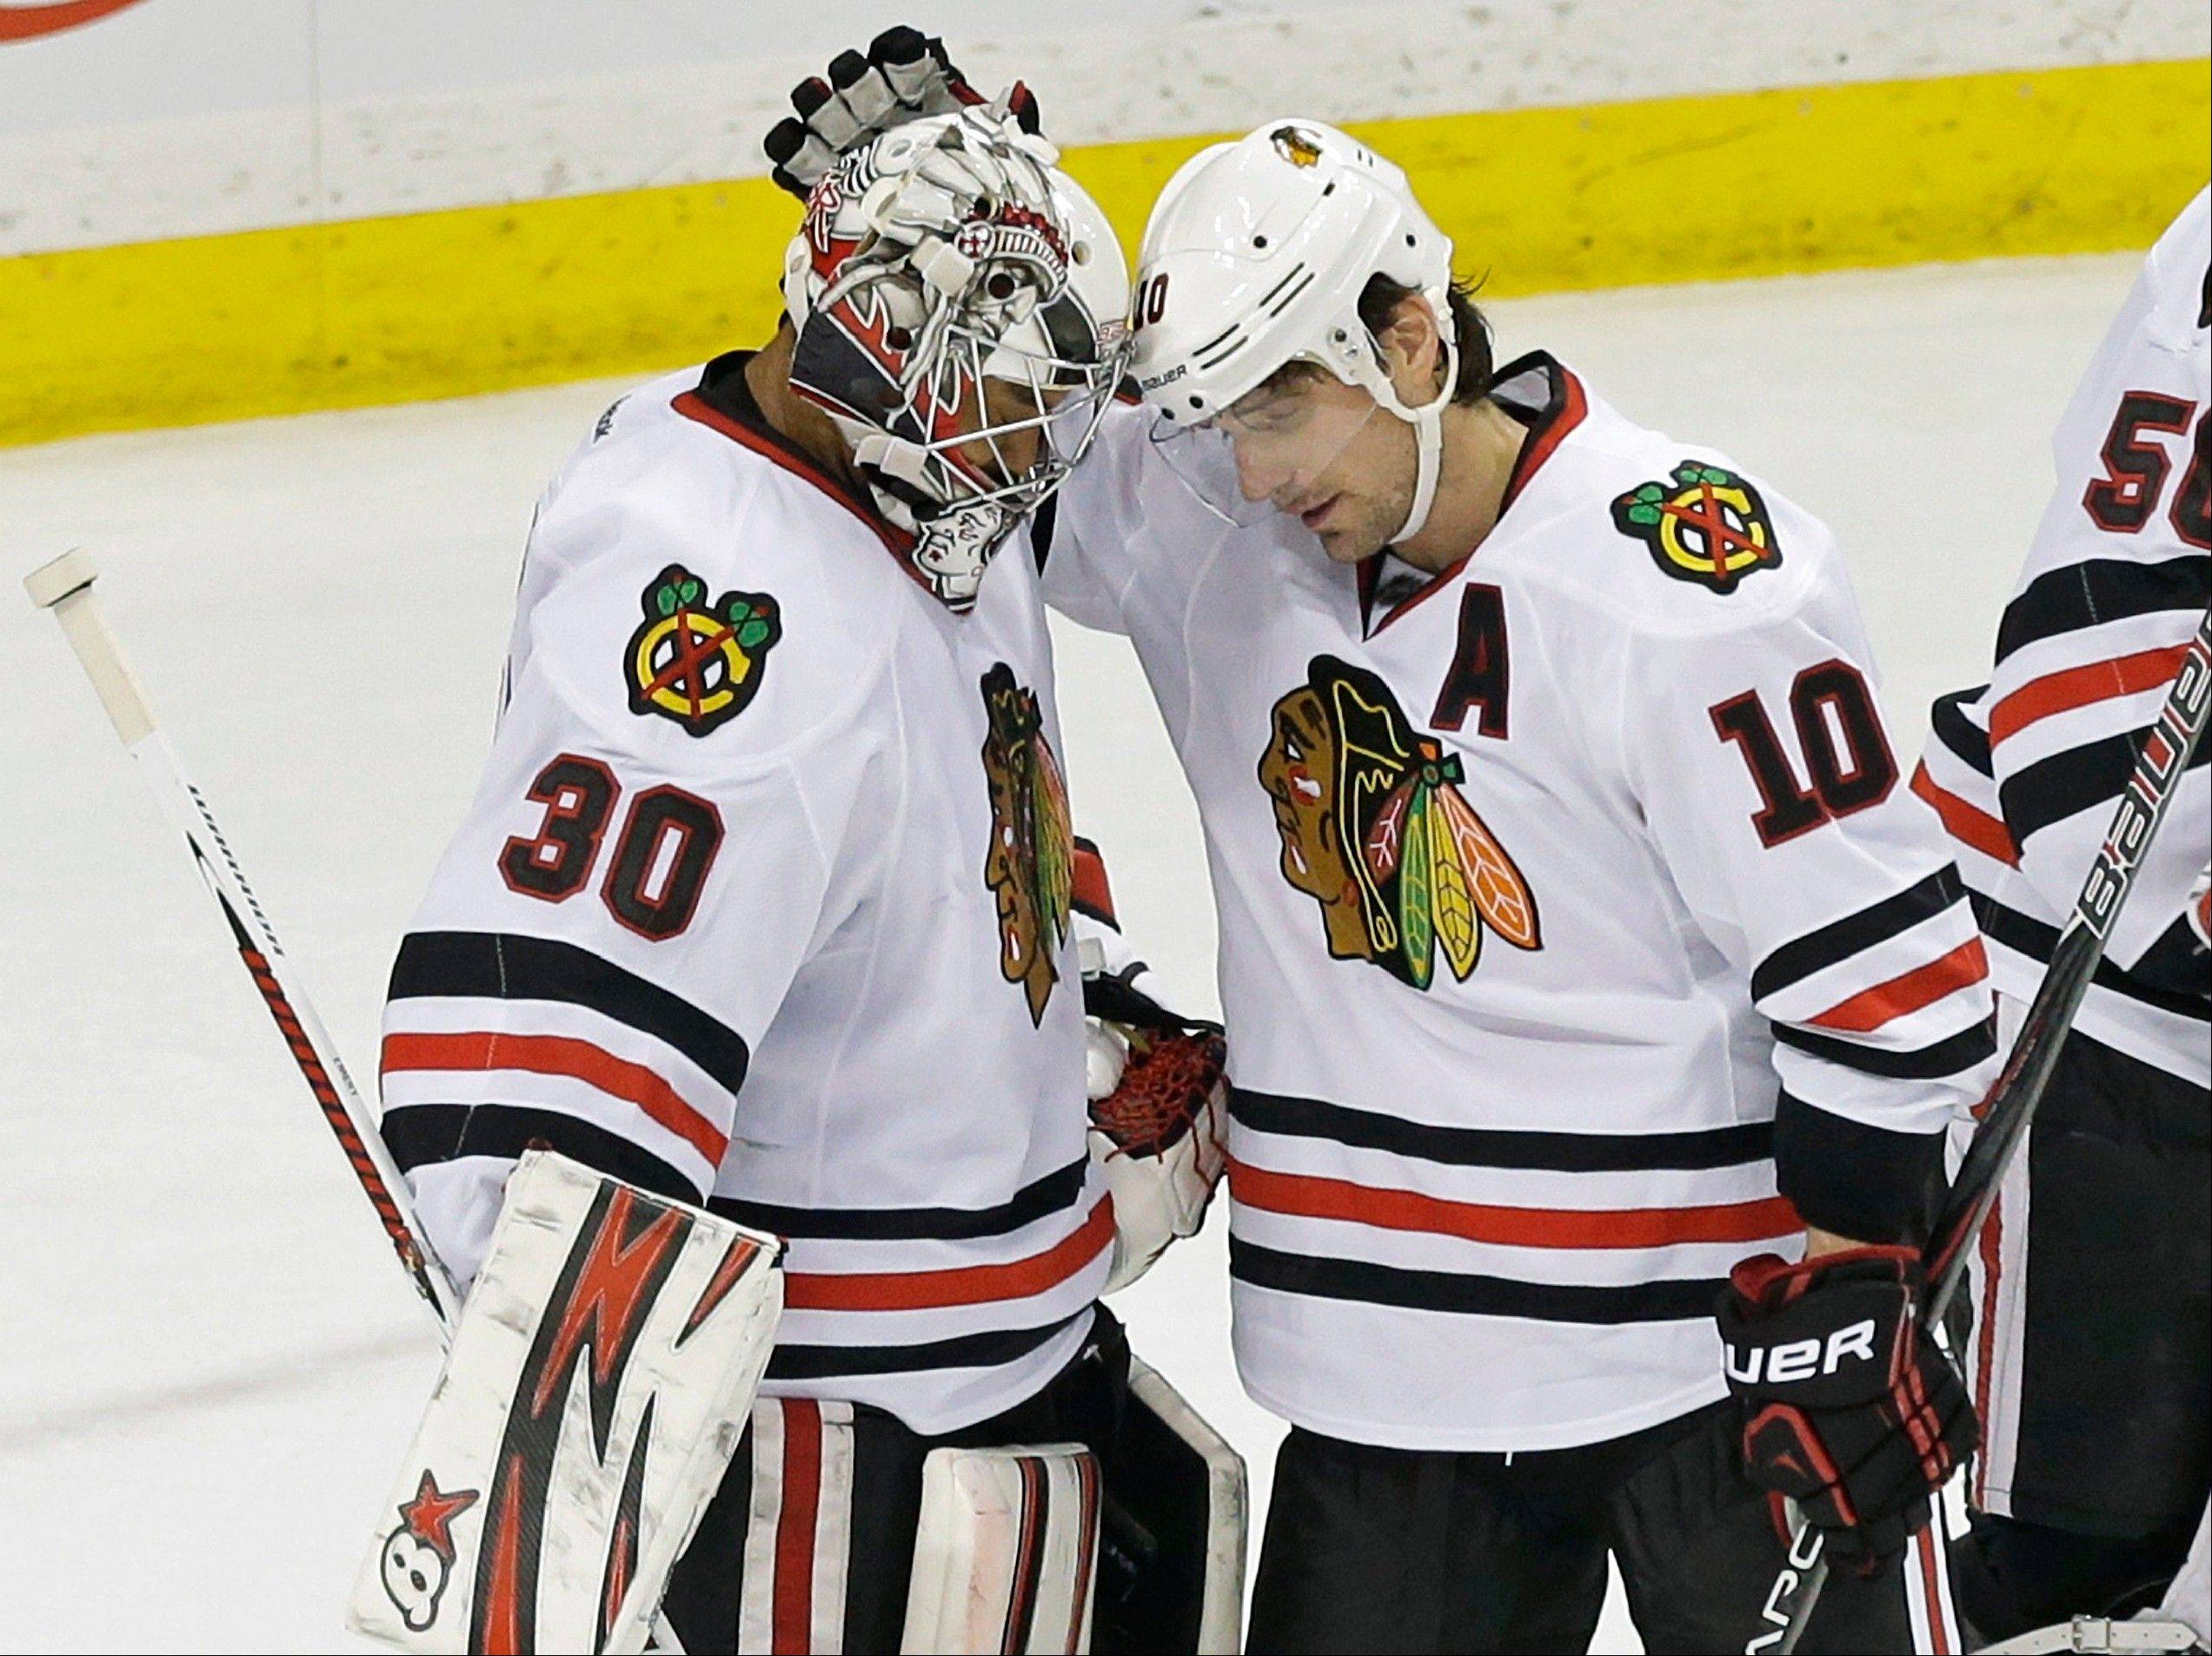 Chicago Blackhawks' Patrick Sharp, right, congratulates goalie Ray Emery after he shut out the Minnesota Wild in a 1-0 victory in an NHL hockey game Tuesday, April 9, 2013 in St. Paul.